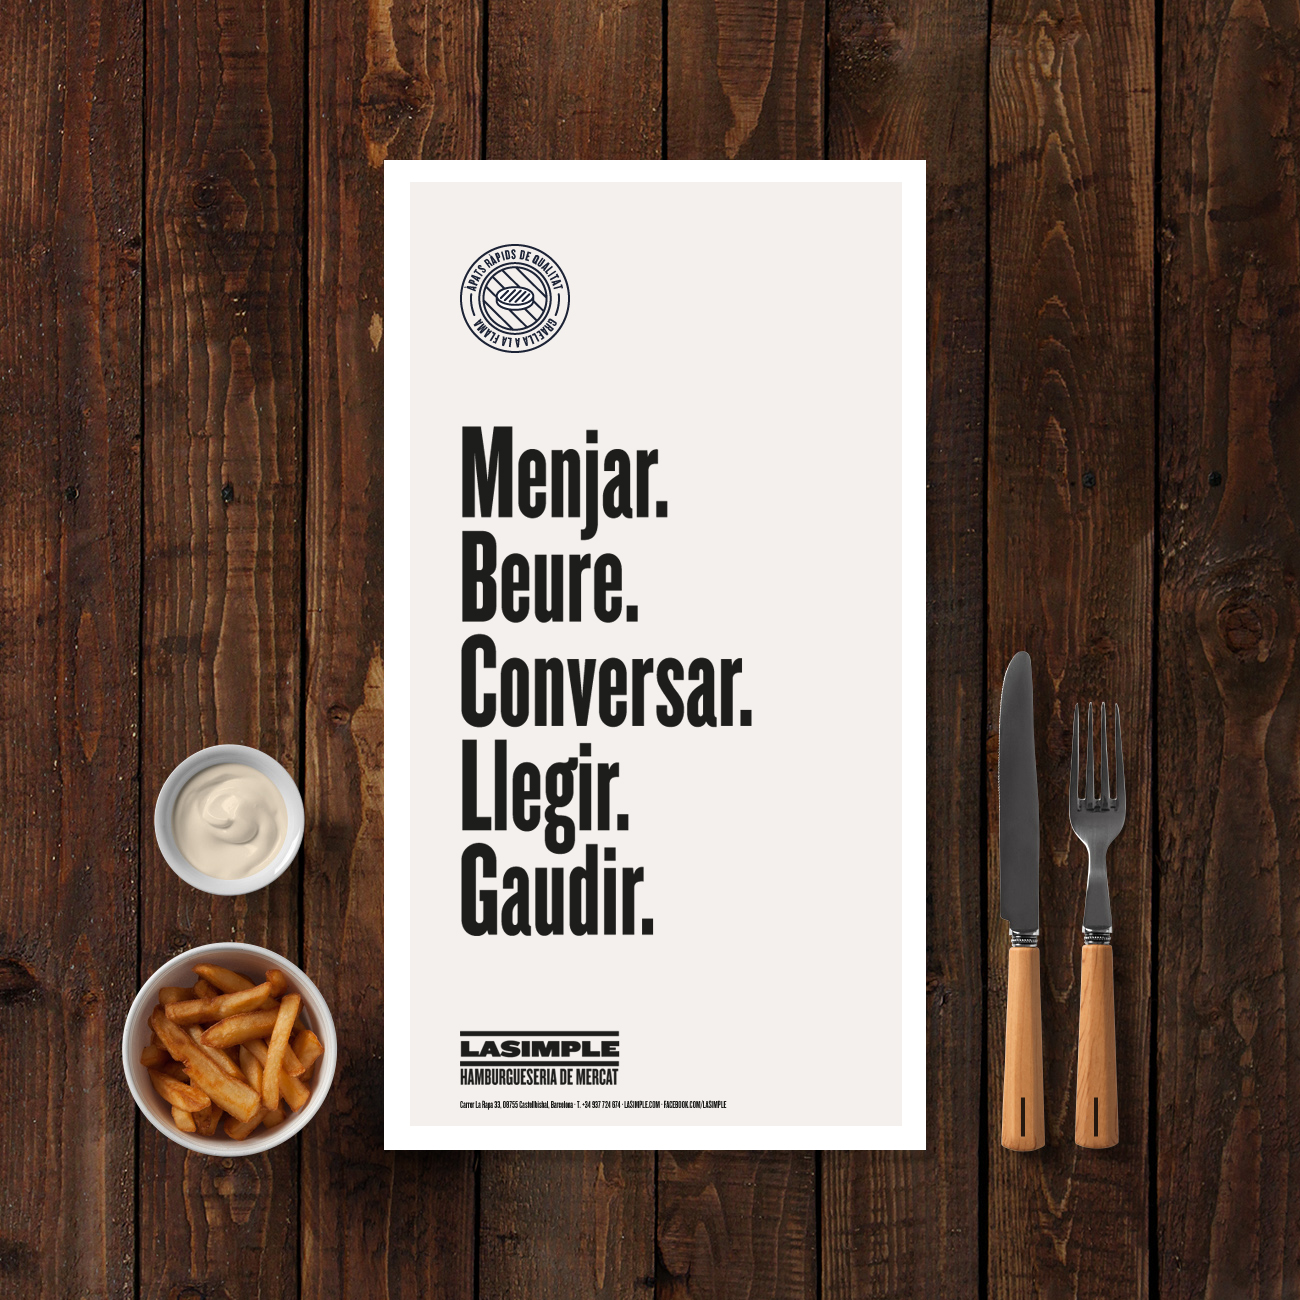 lasimple-menu-design